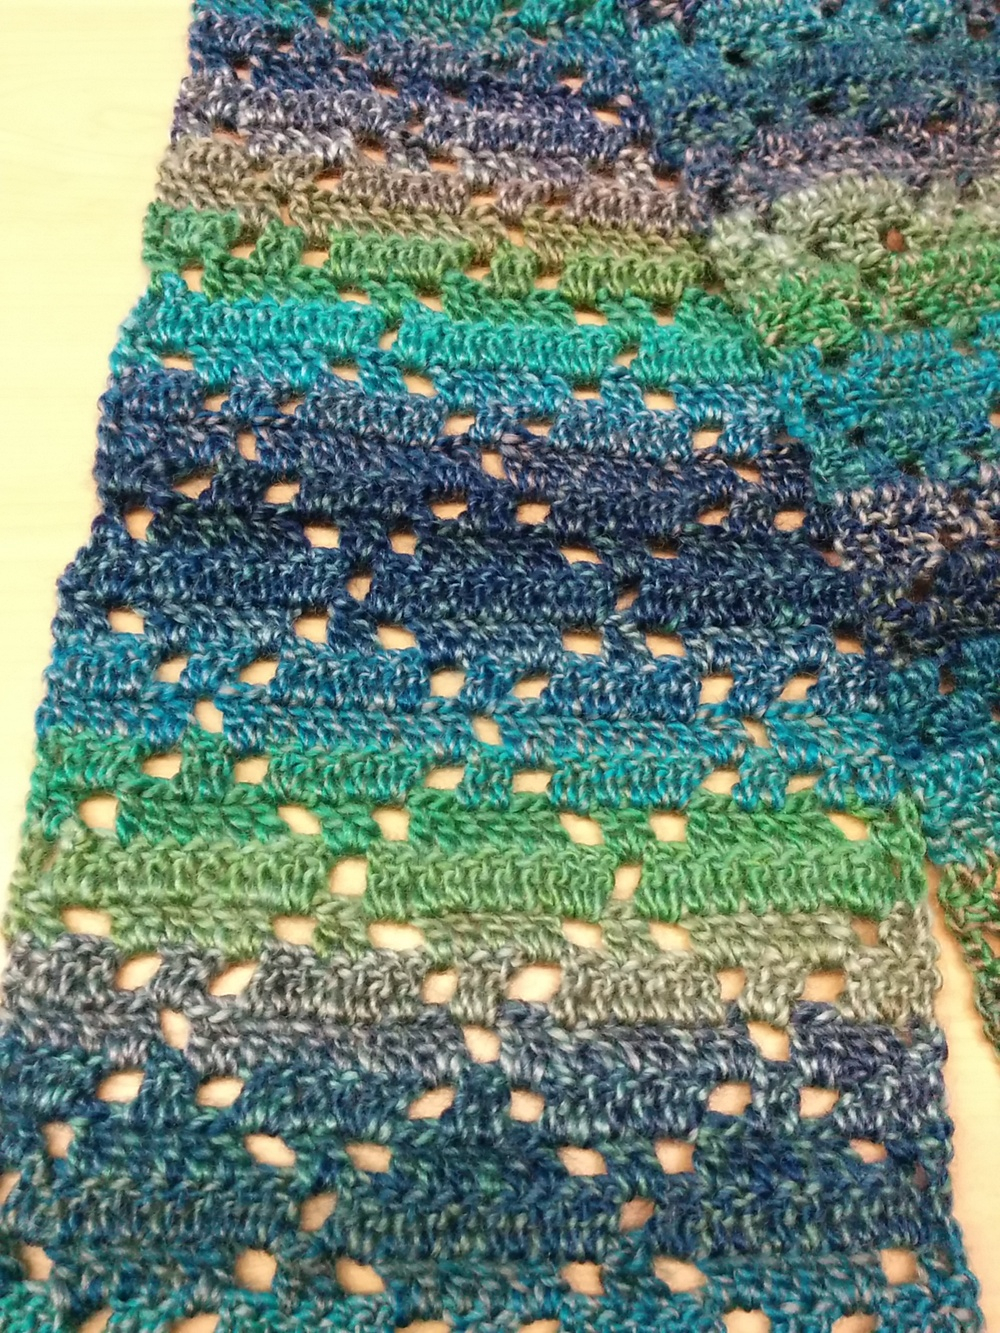 Diamond Crochet Pattern  Diamond Eyelet Scarf First Fo For 2015 Wwwhooksandthread